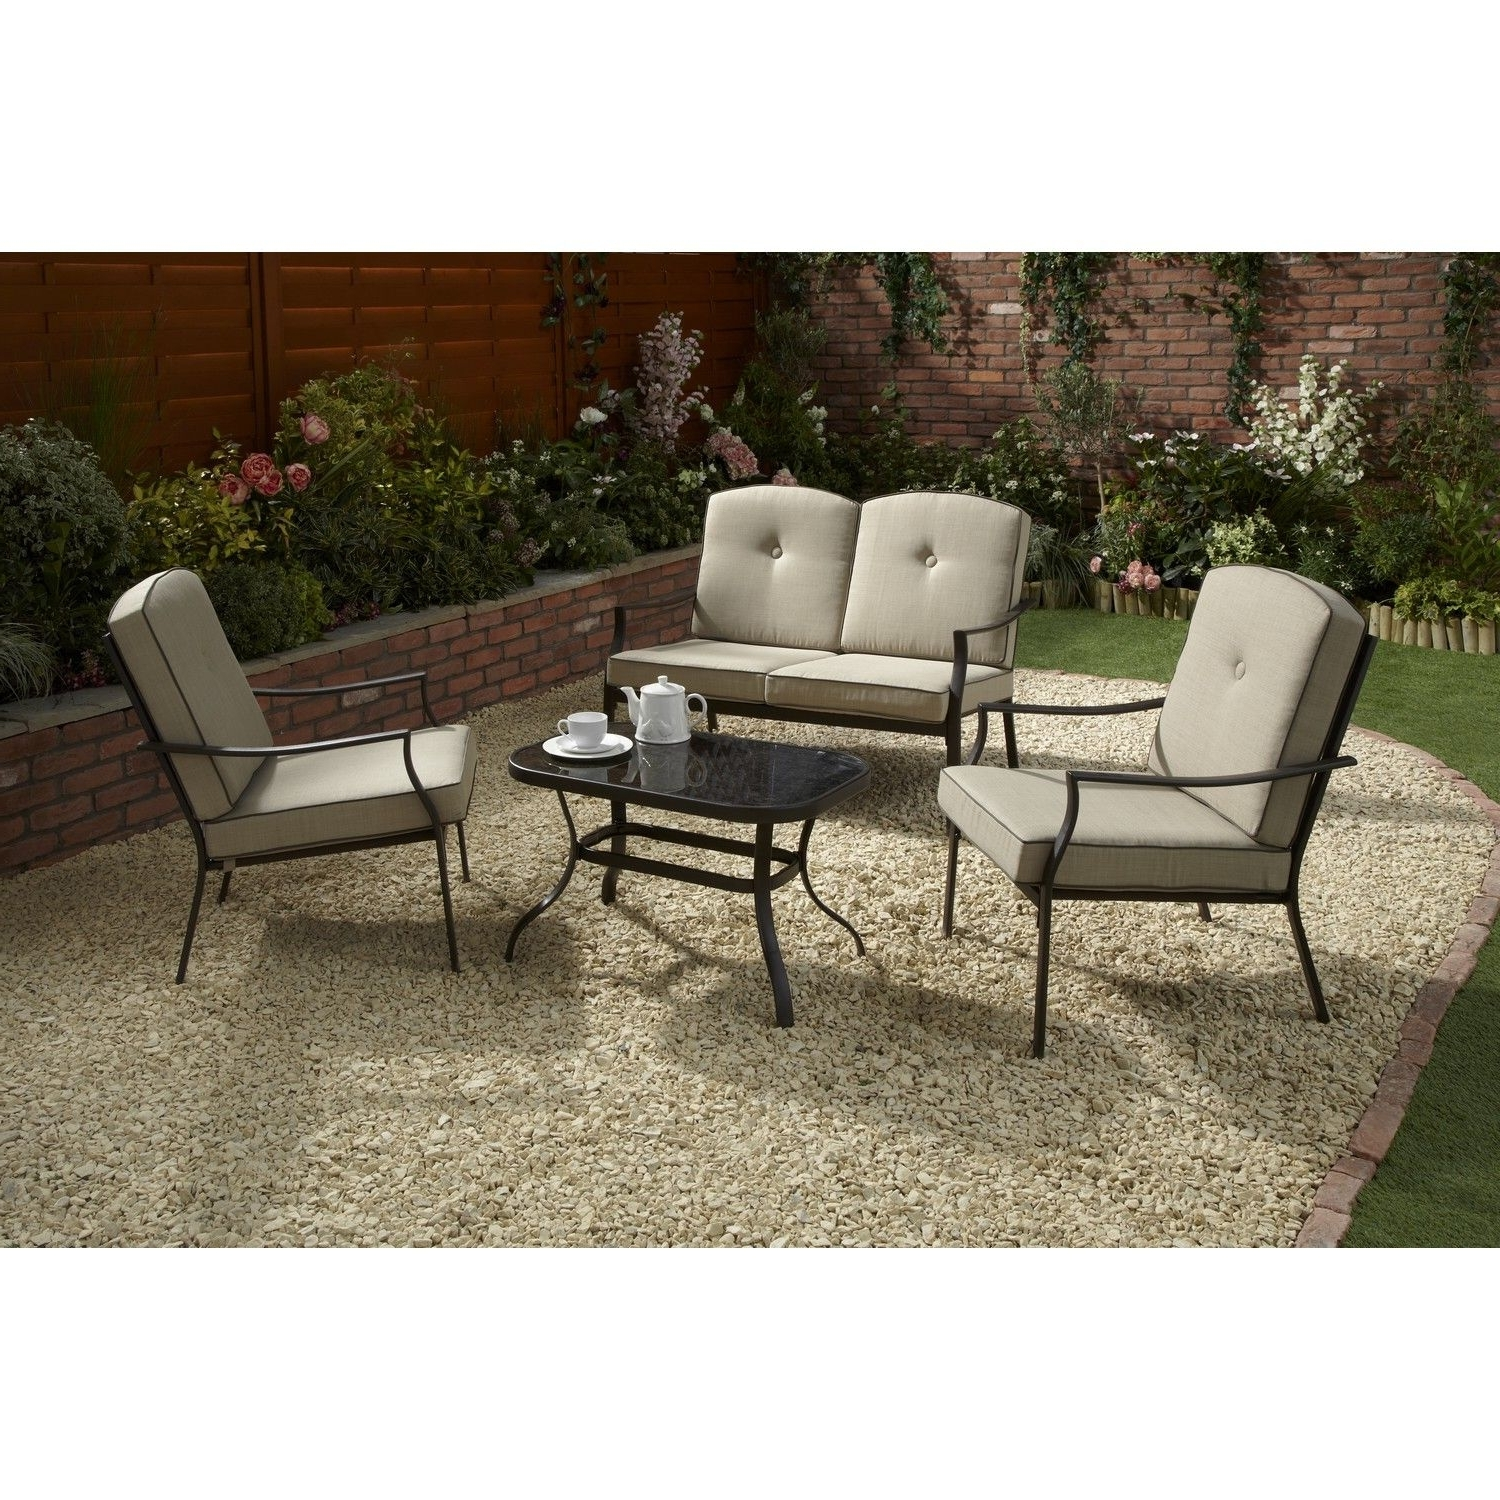 Preferred Black Patio Conversation Sets Pertaining To The Nevada Conversation Set Is The Perfect Alfresco Dining Companion (View 17 of 20)